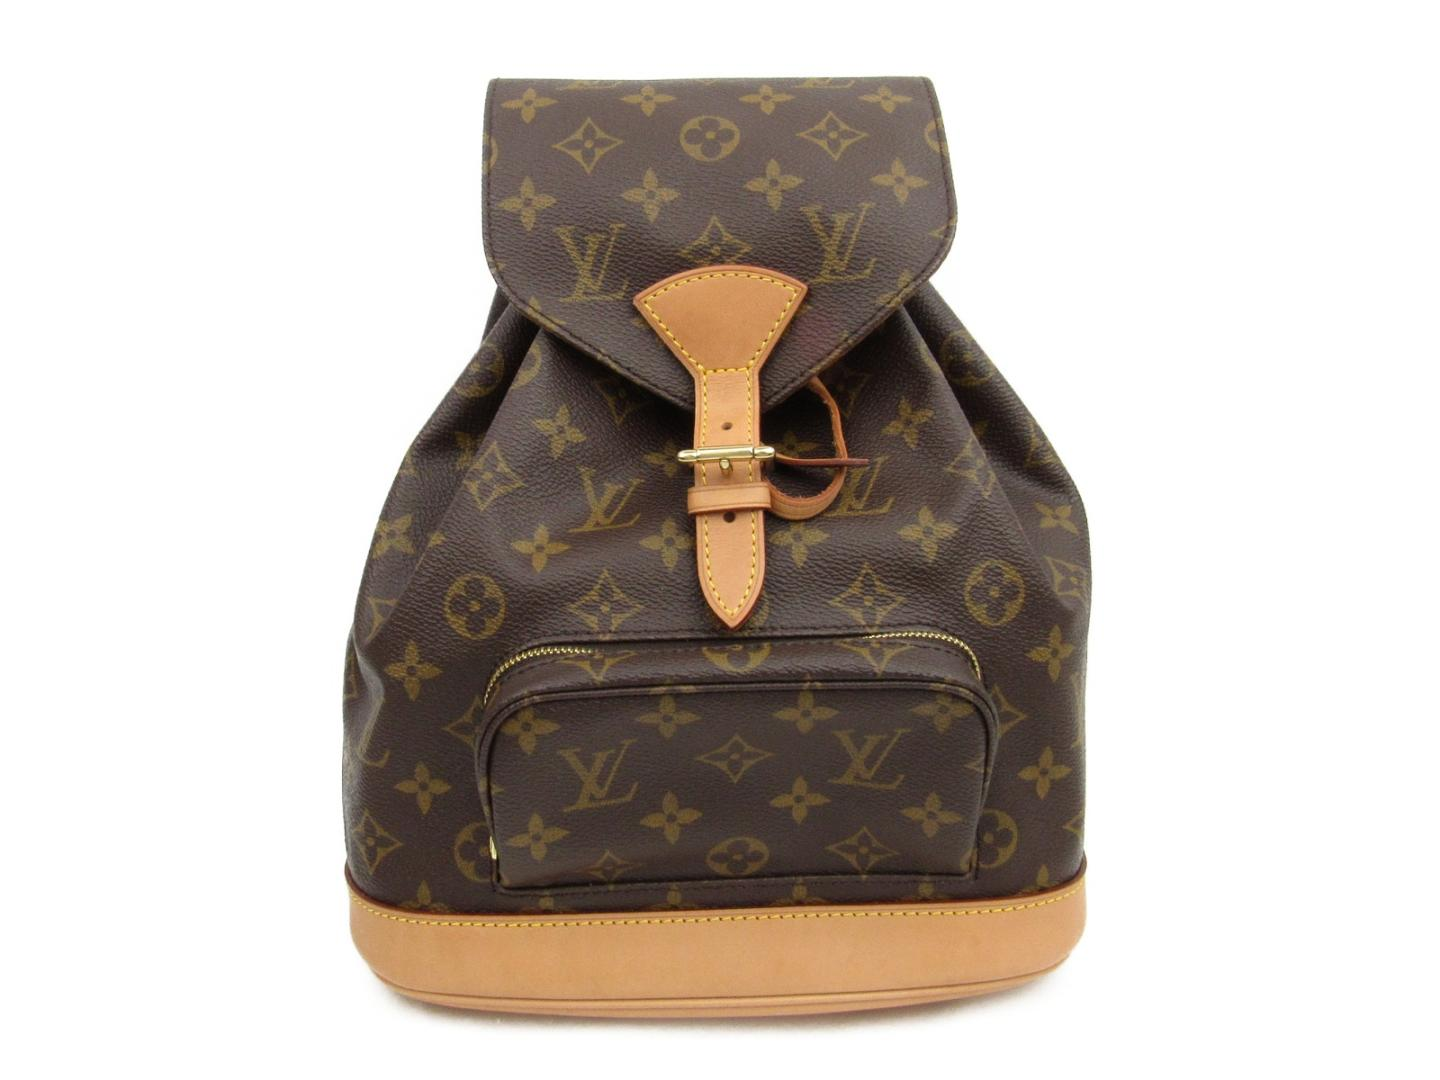 b099fee69c2e Authentic LOUIS VUITTON Montsouris MM rucksack backpack M51136 Monogram